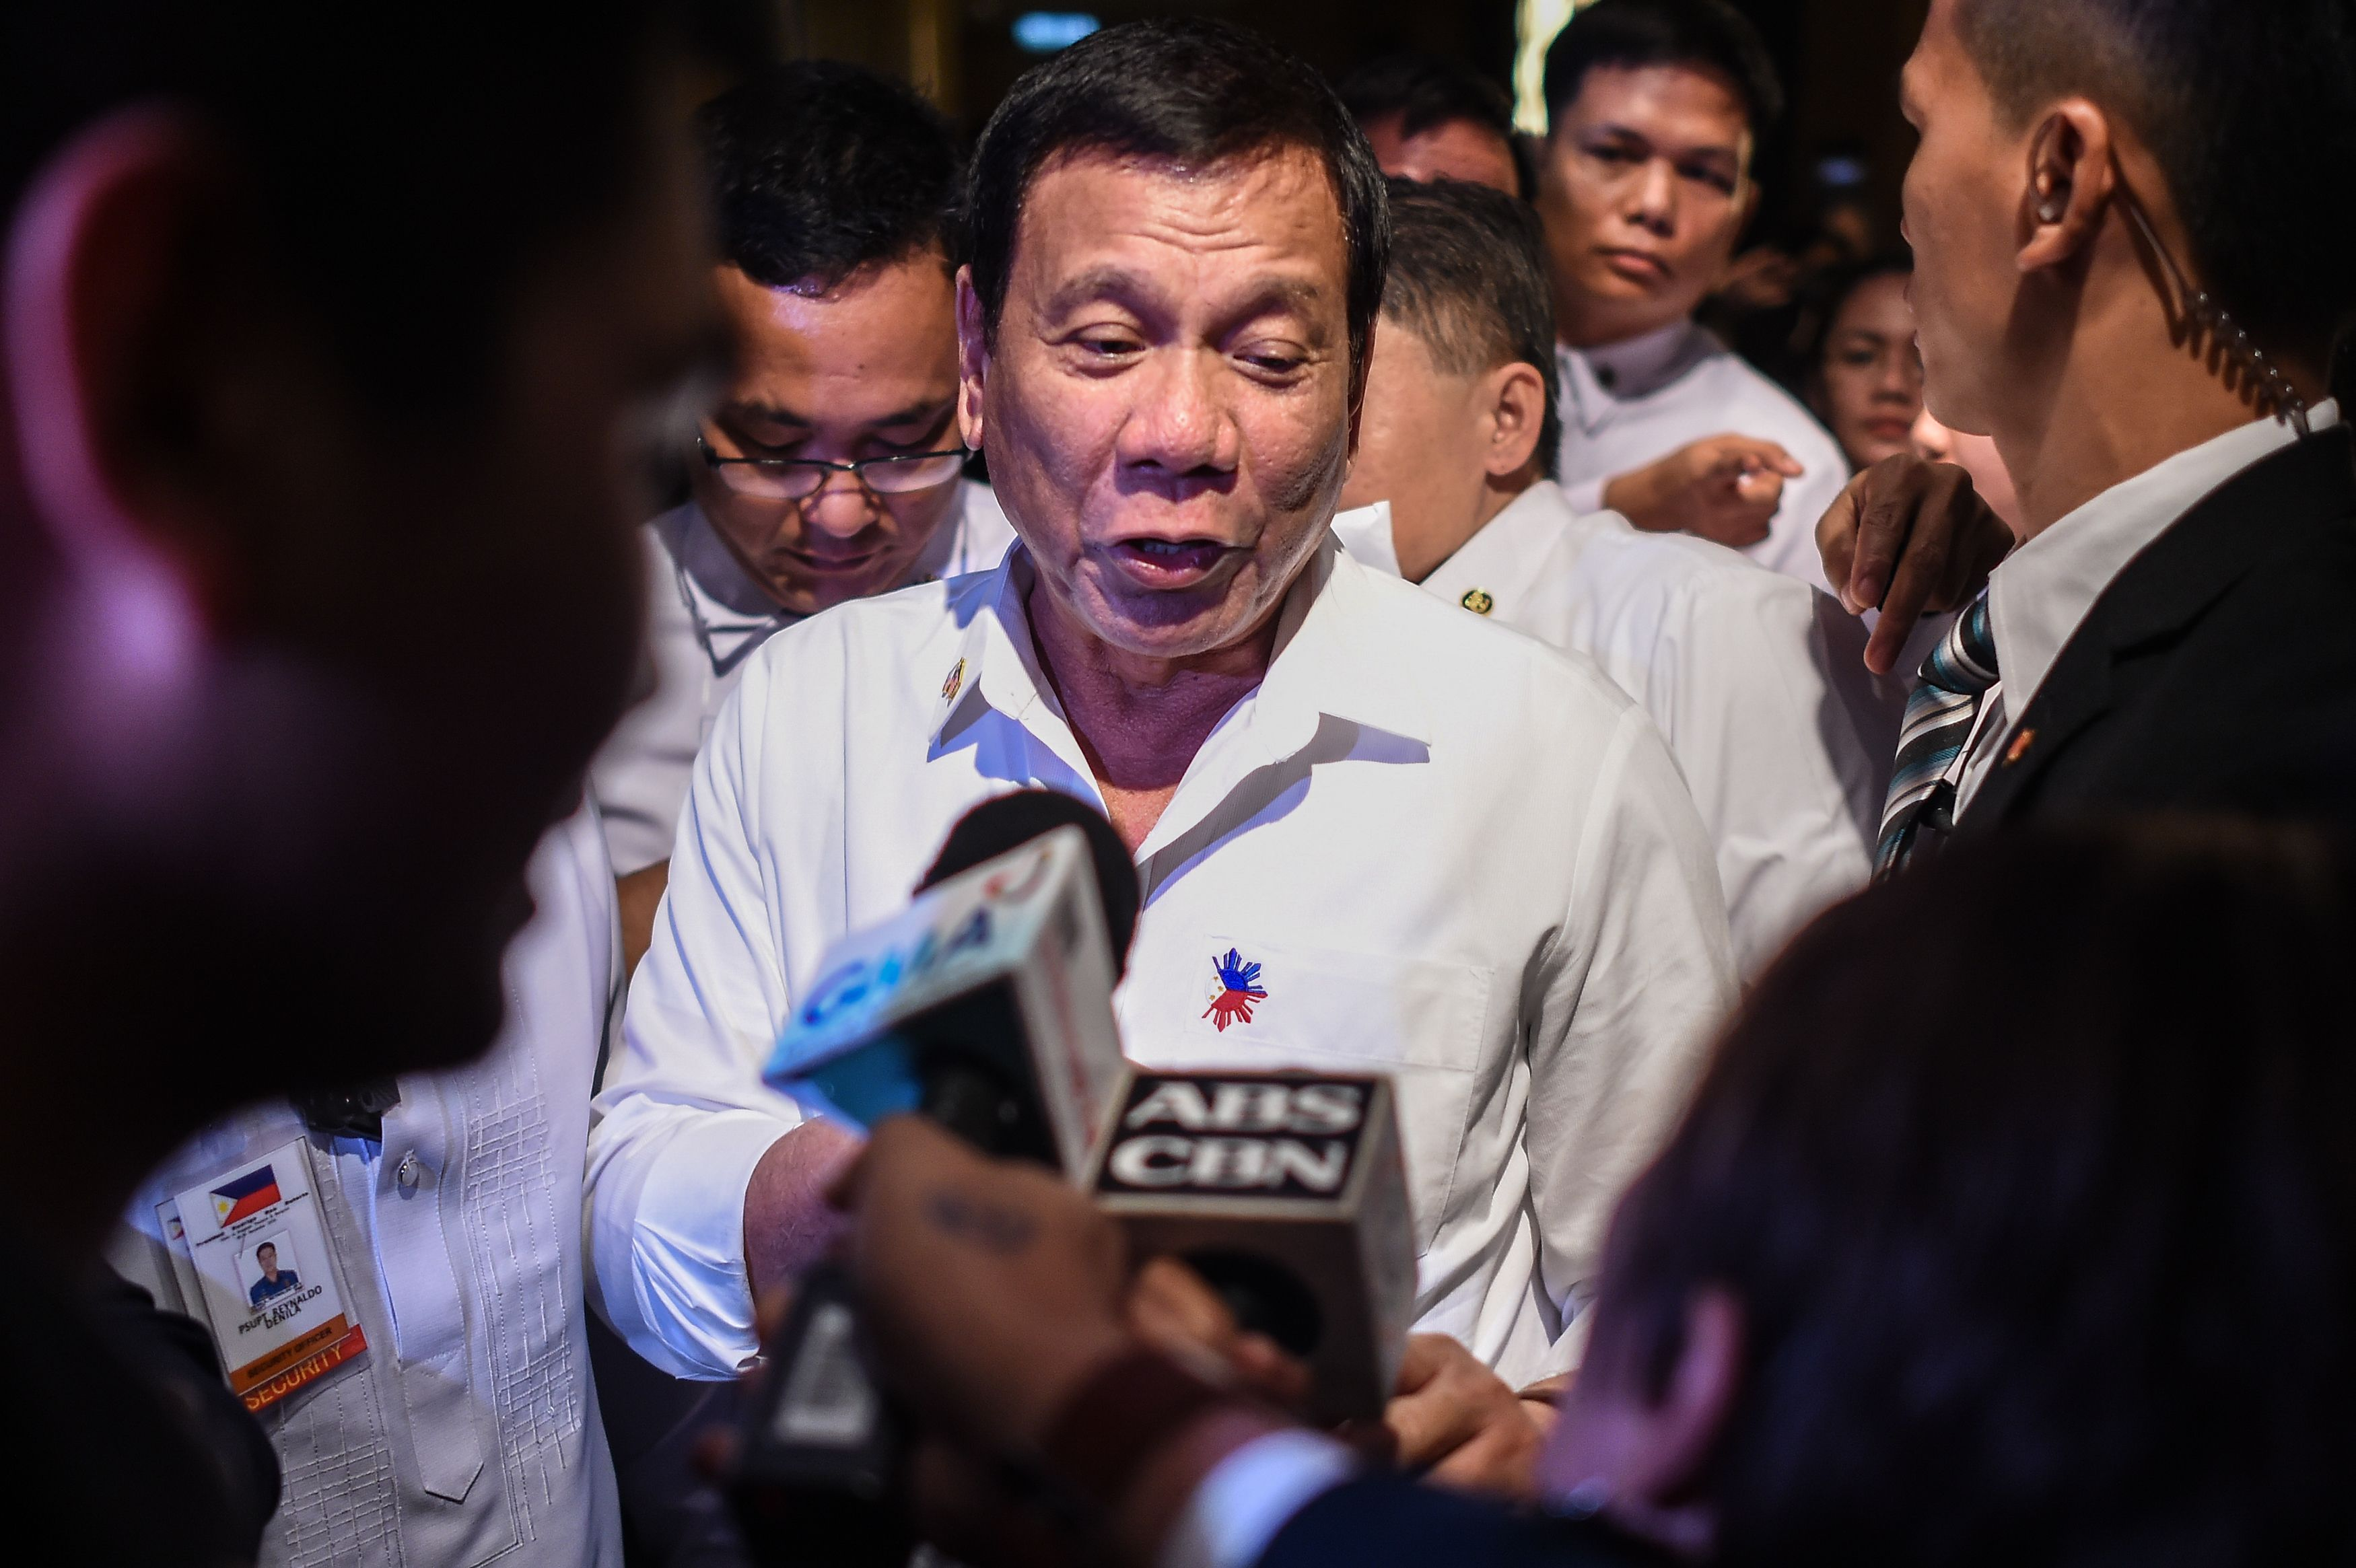 Philippine's President Rodrigo Duterte speaks to media after meeting with  Philippine nationals living in Malaysia during an official visit in Kuala Lumpur on Nov. 9, 2016.